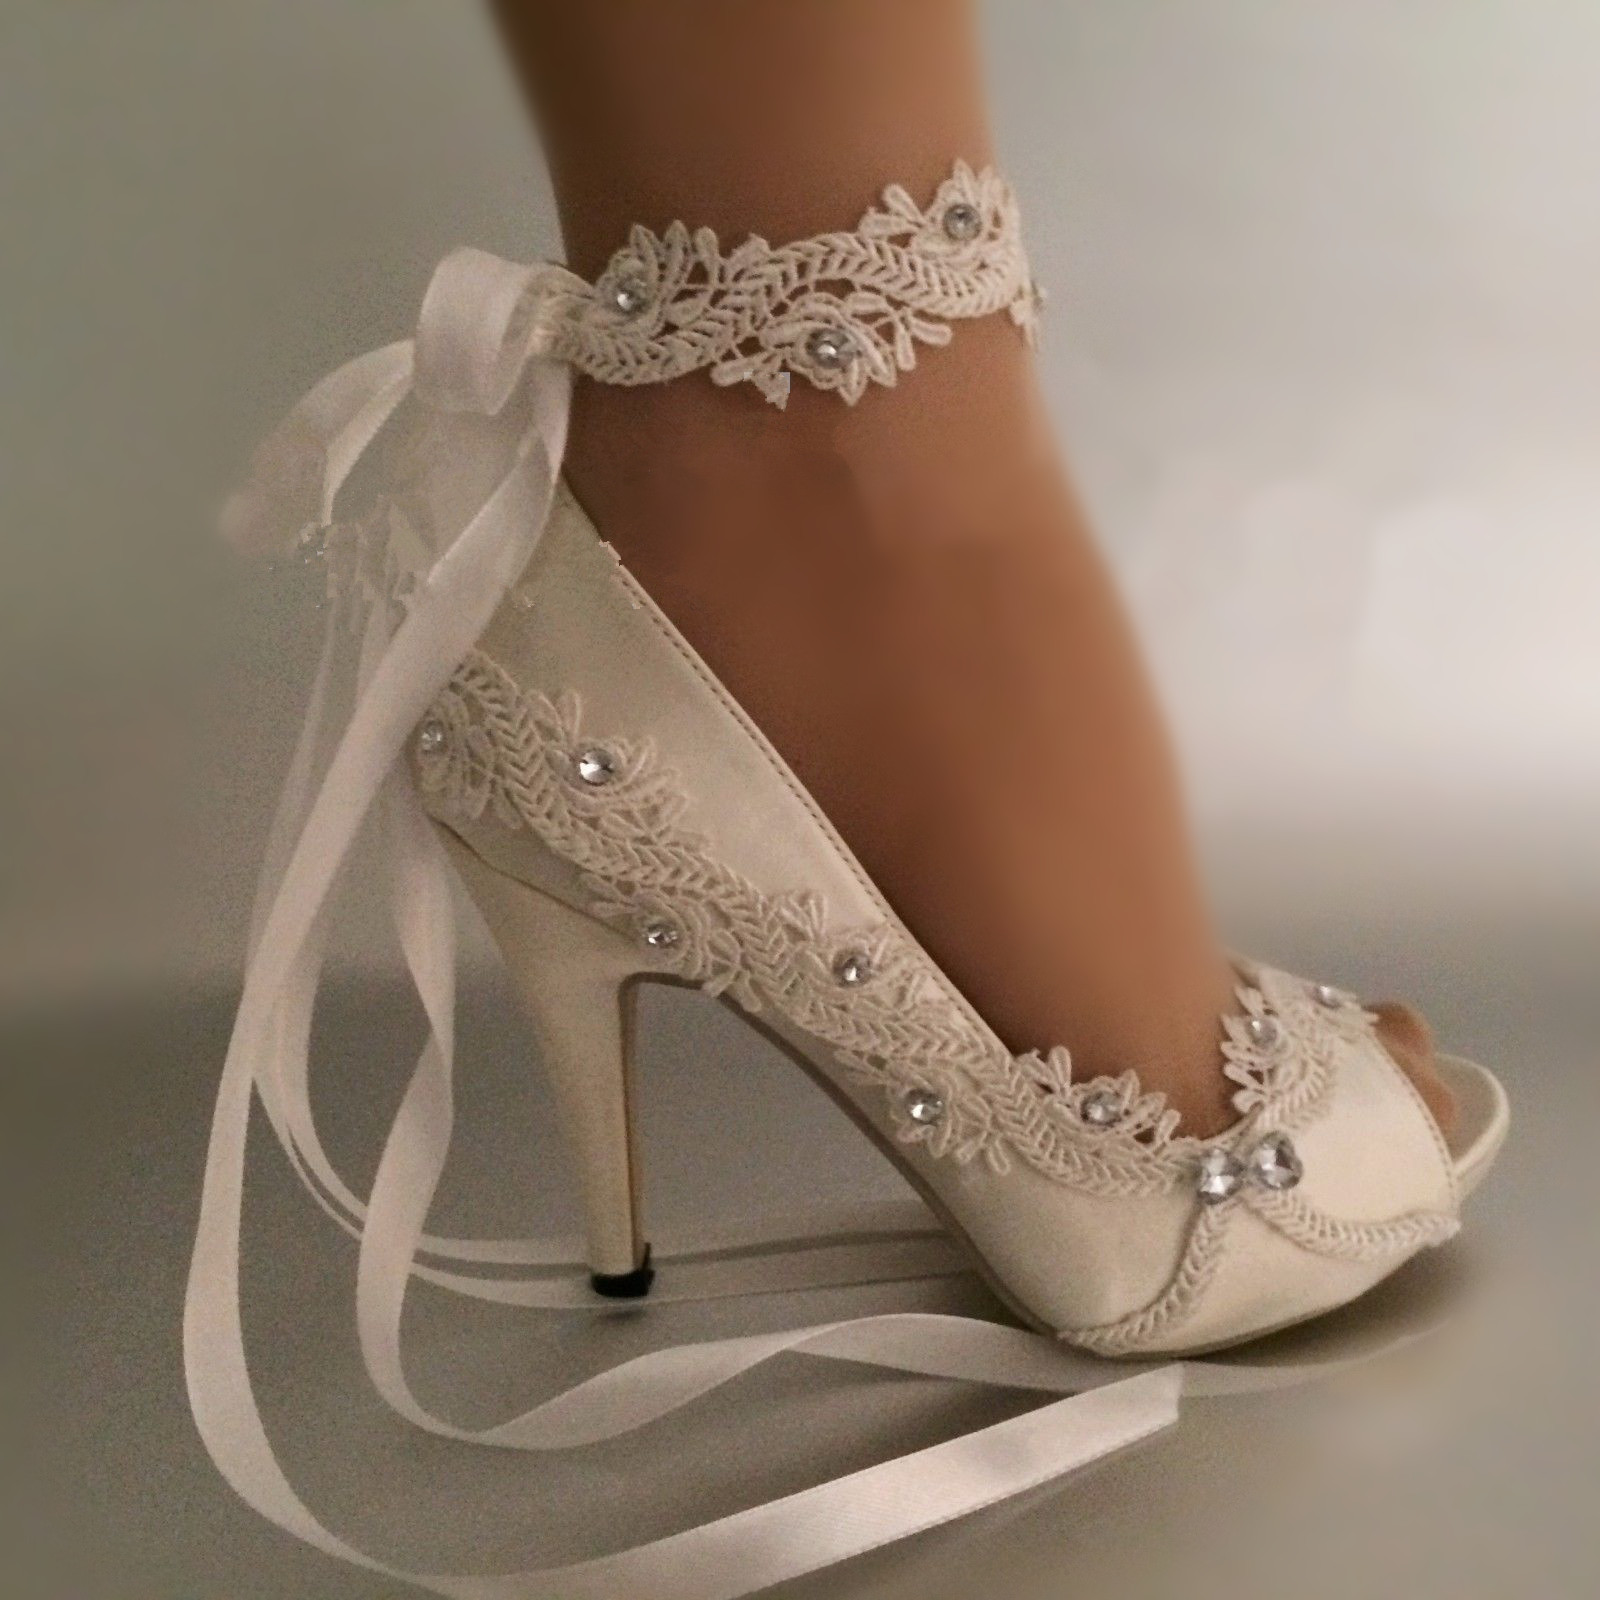 Wedding Bridal Heels: Aliexpress.com : Buy Dress Shoes Women Pumps Open Toe Lace